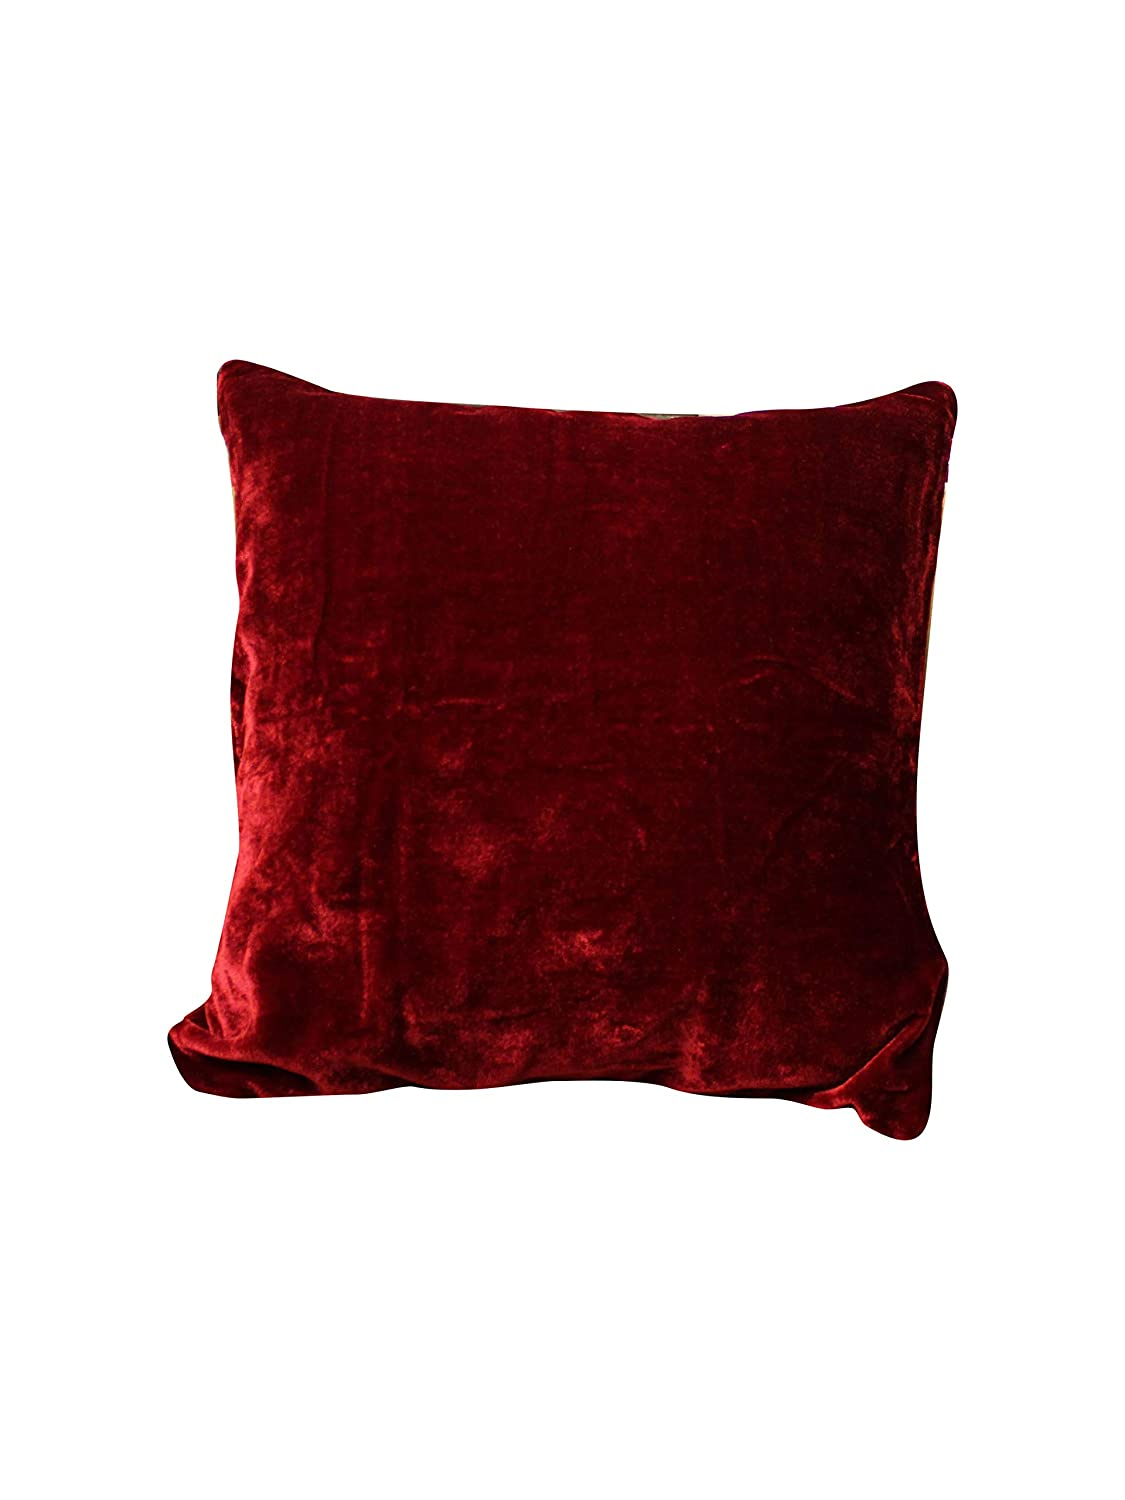 Elina Home 2 Set of 2 Maroon Cozy Solid Velvet Throw Pillow Couch with Zipper Hidden One Size 18x18 Decorative Pillowcases Cushion Cover Cases for Sofa